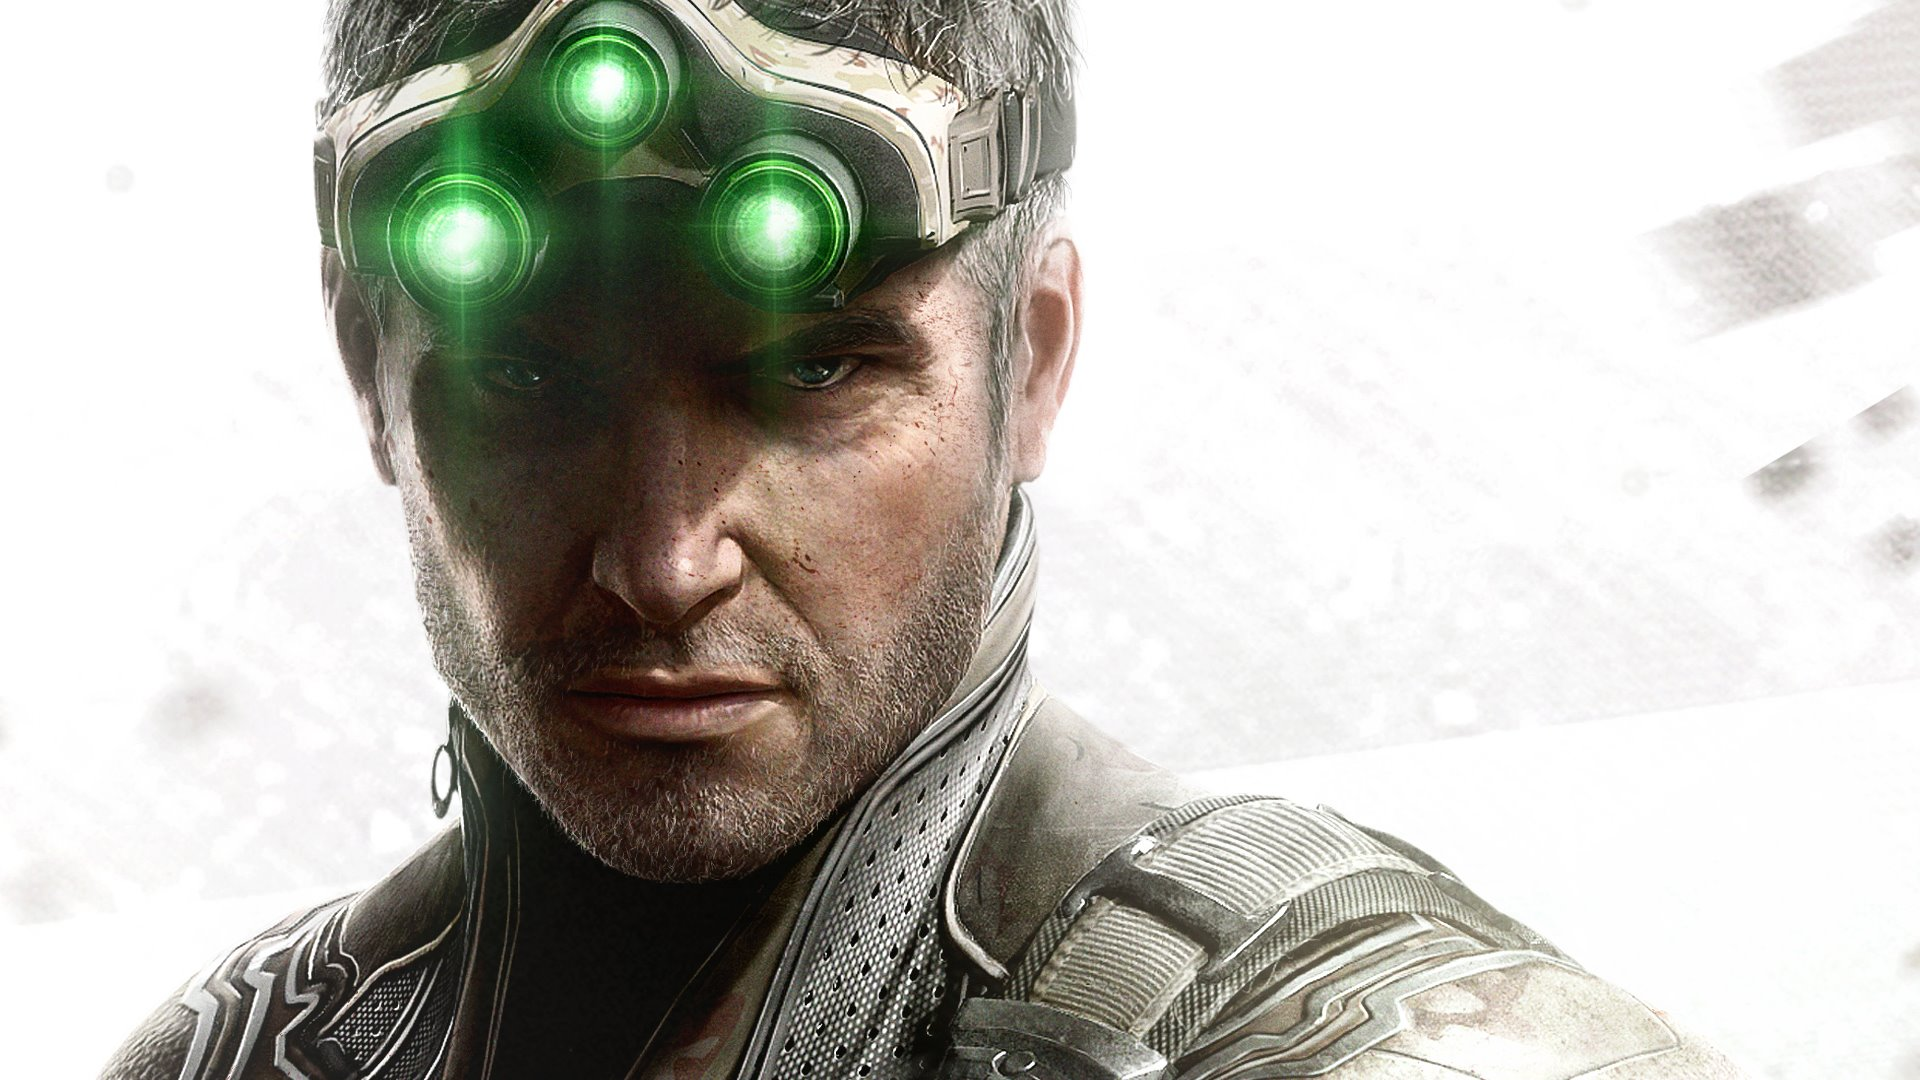 Bloodborne 2 e Splinter Cell appaiono su Amazon